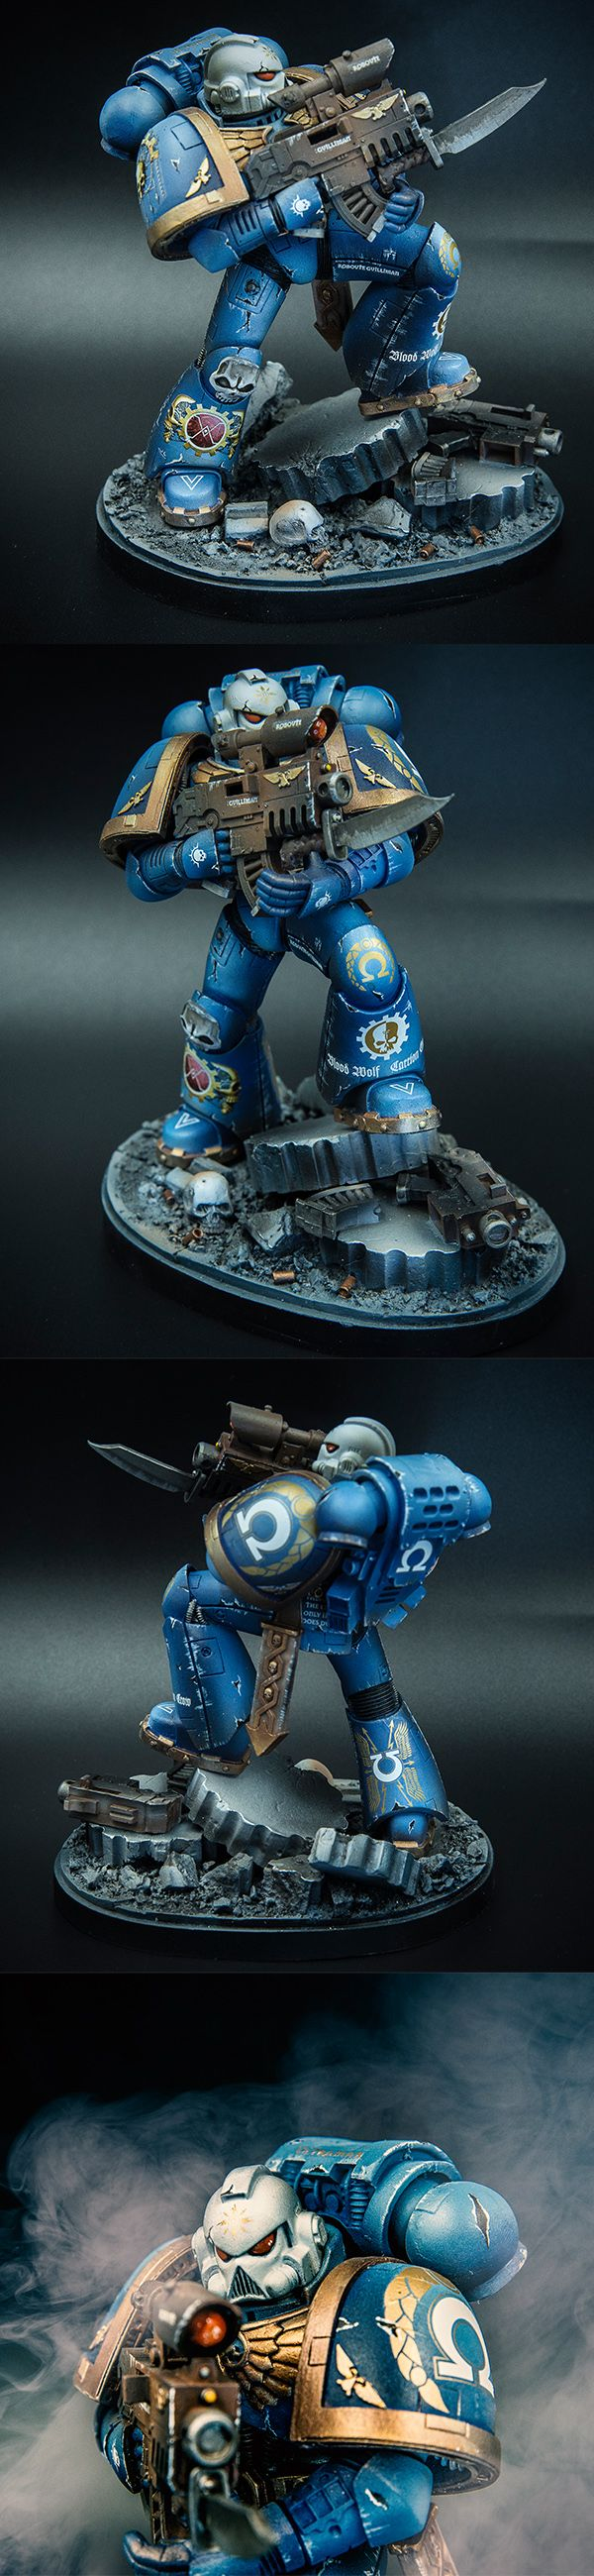 large scale space marine